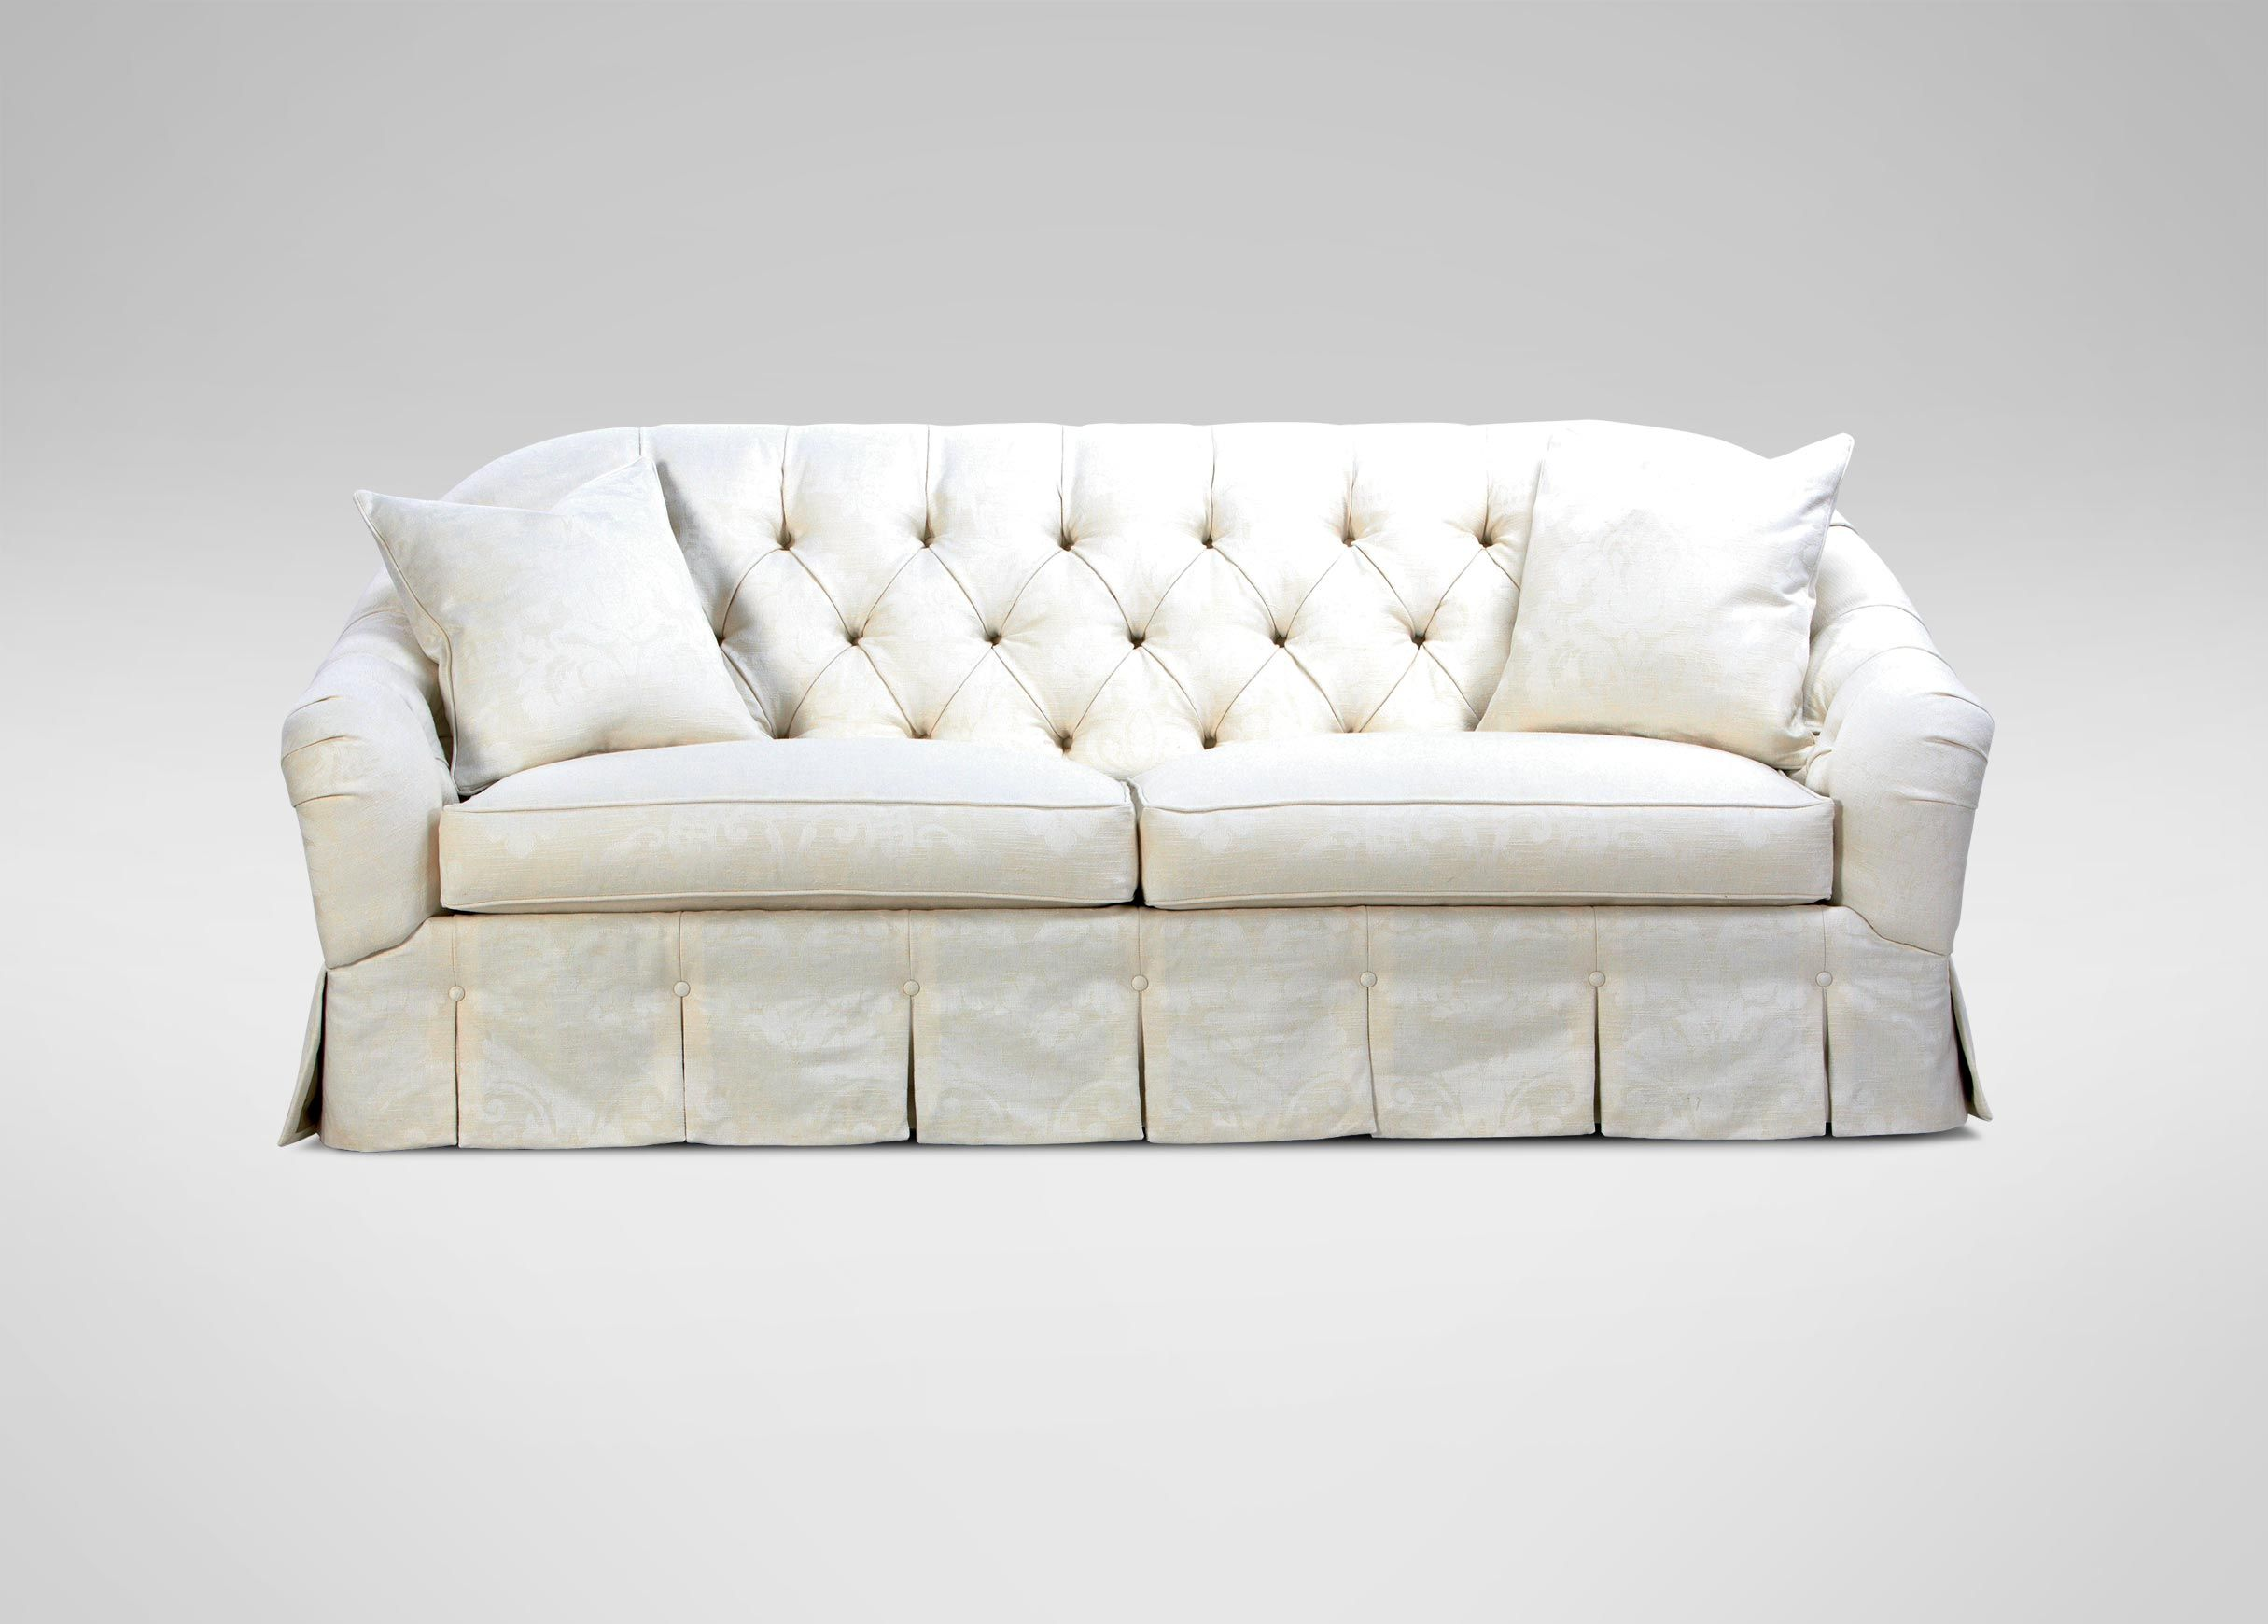 Brilliant Ethan Allen Peyton Sofa Love This Sofa Just Wish It Weren Home Interior And Landscaping Ologienasavecom